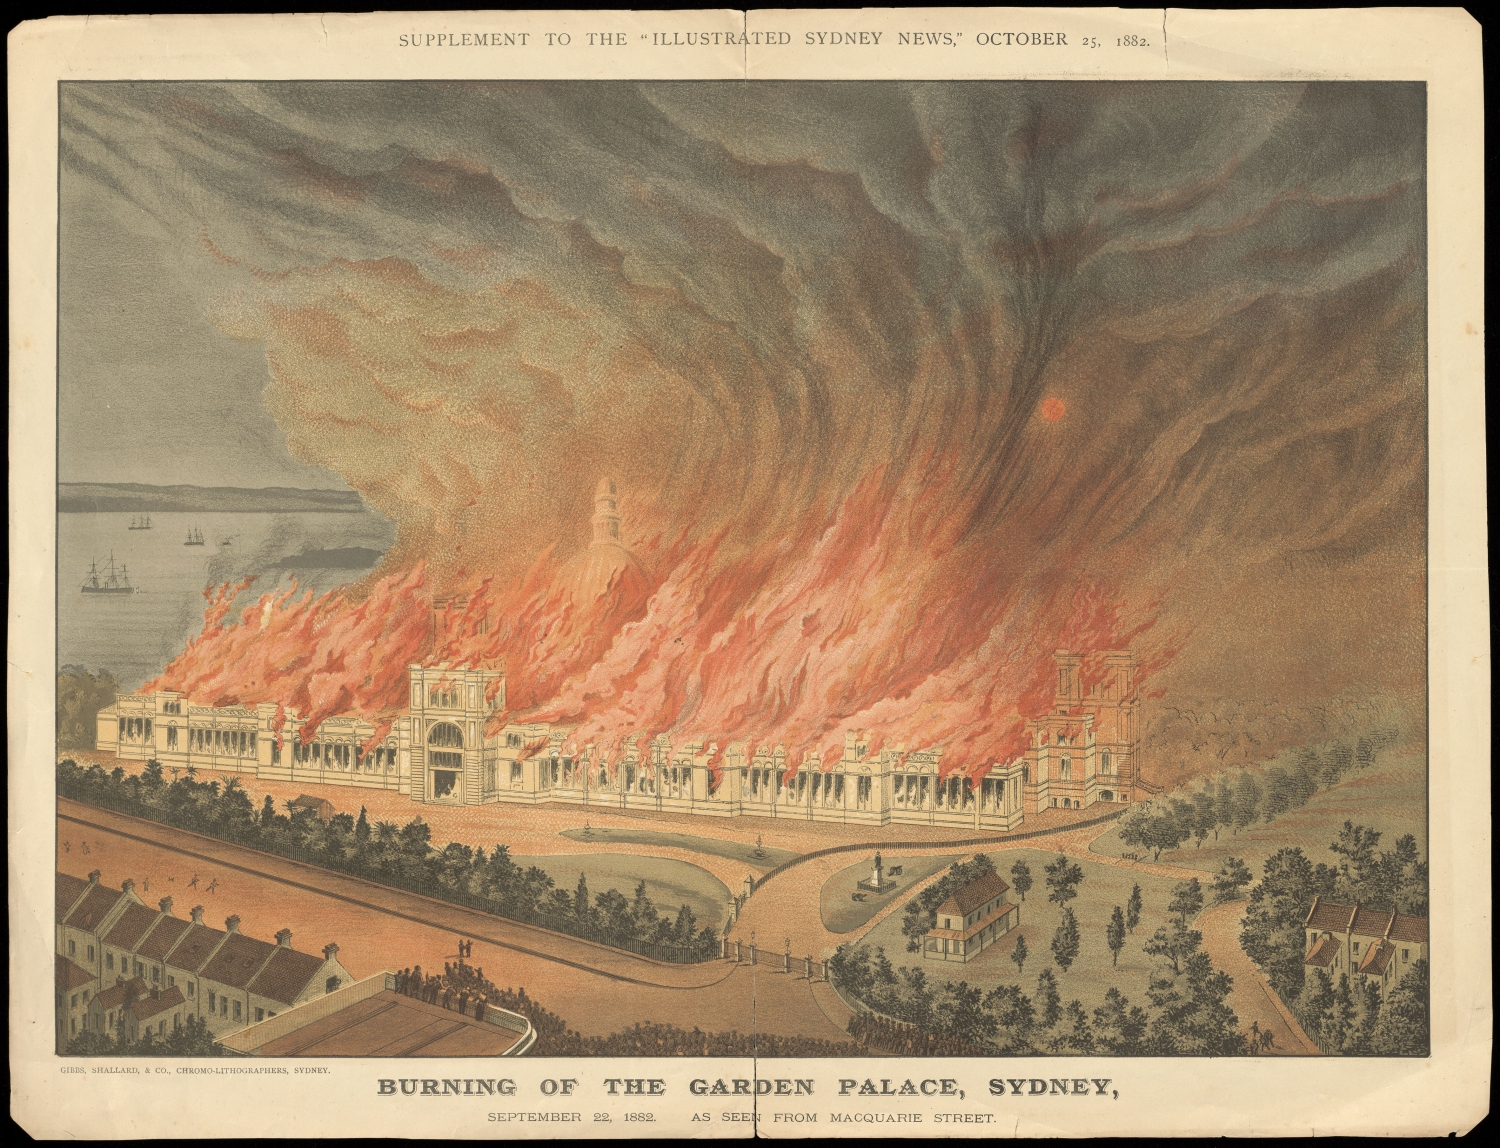 Illustration of the Garden Palace burning in the Royal Botanic Garden.